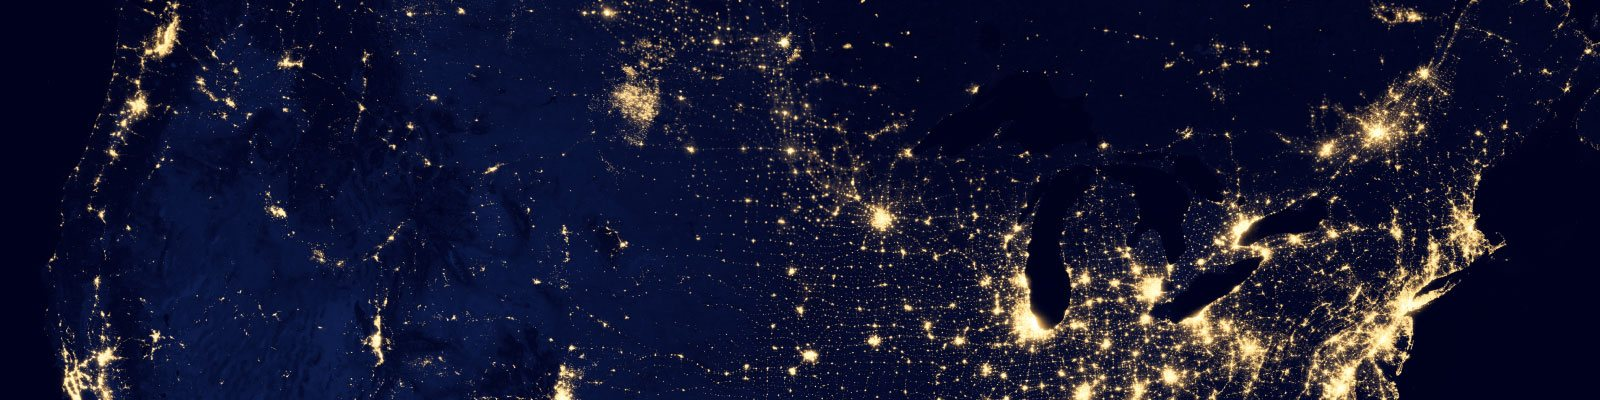 satellite view map of usa at night showing lights of states, cities and towns